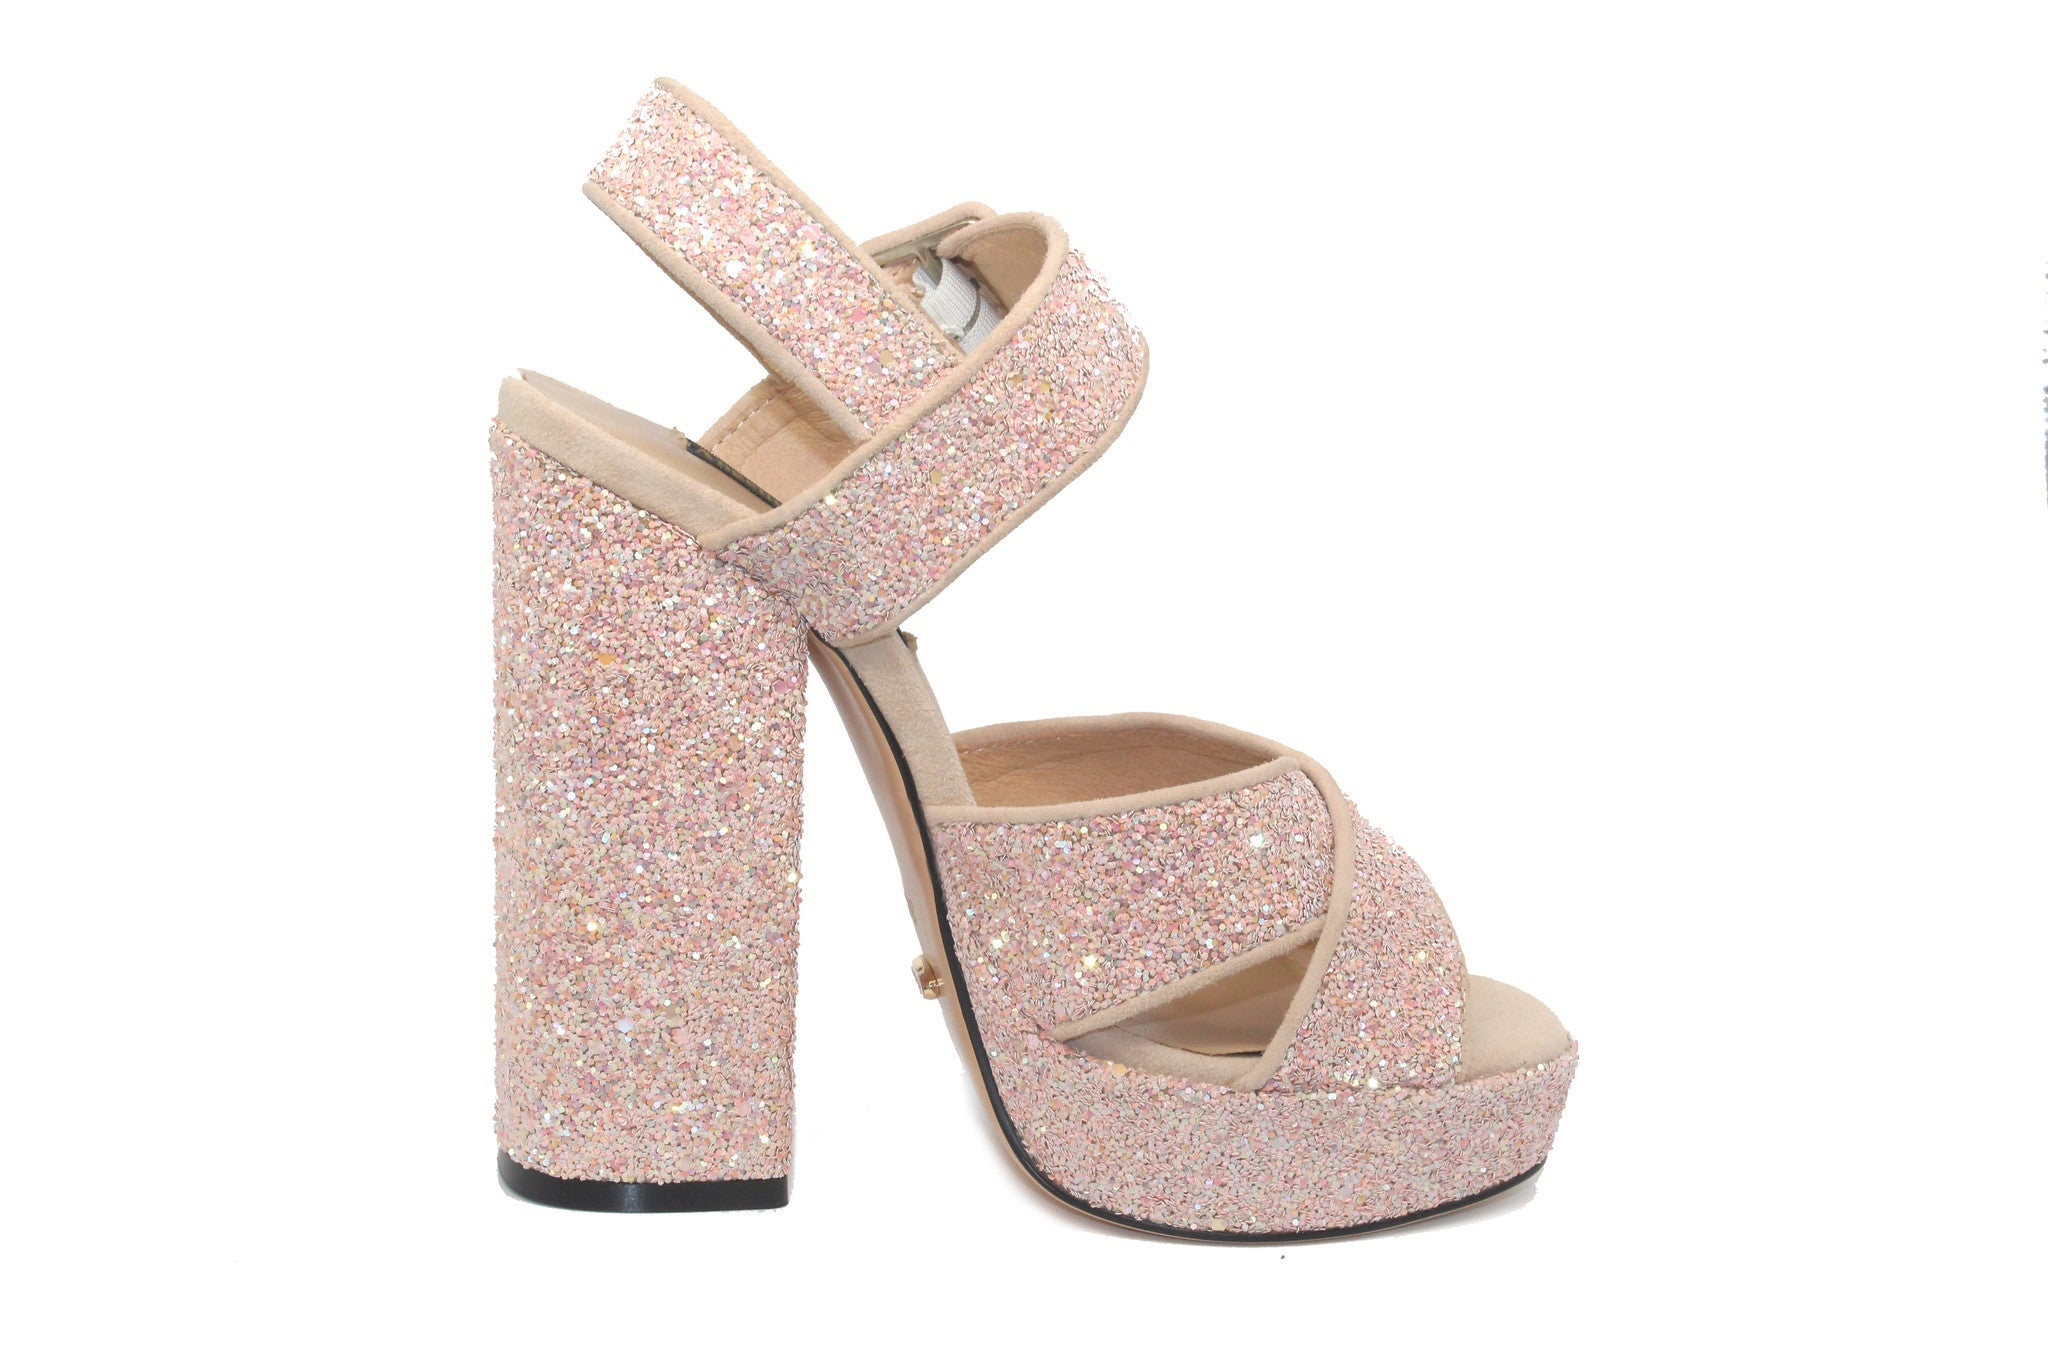 07efd4df8632 Pink Platform High Heeled Sandals